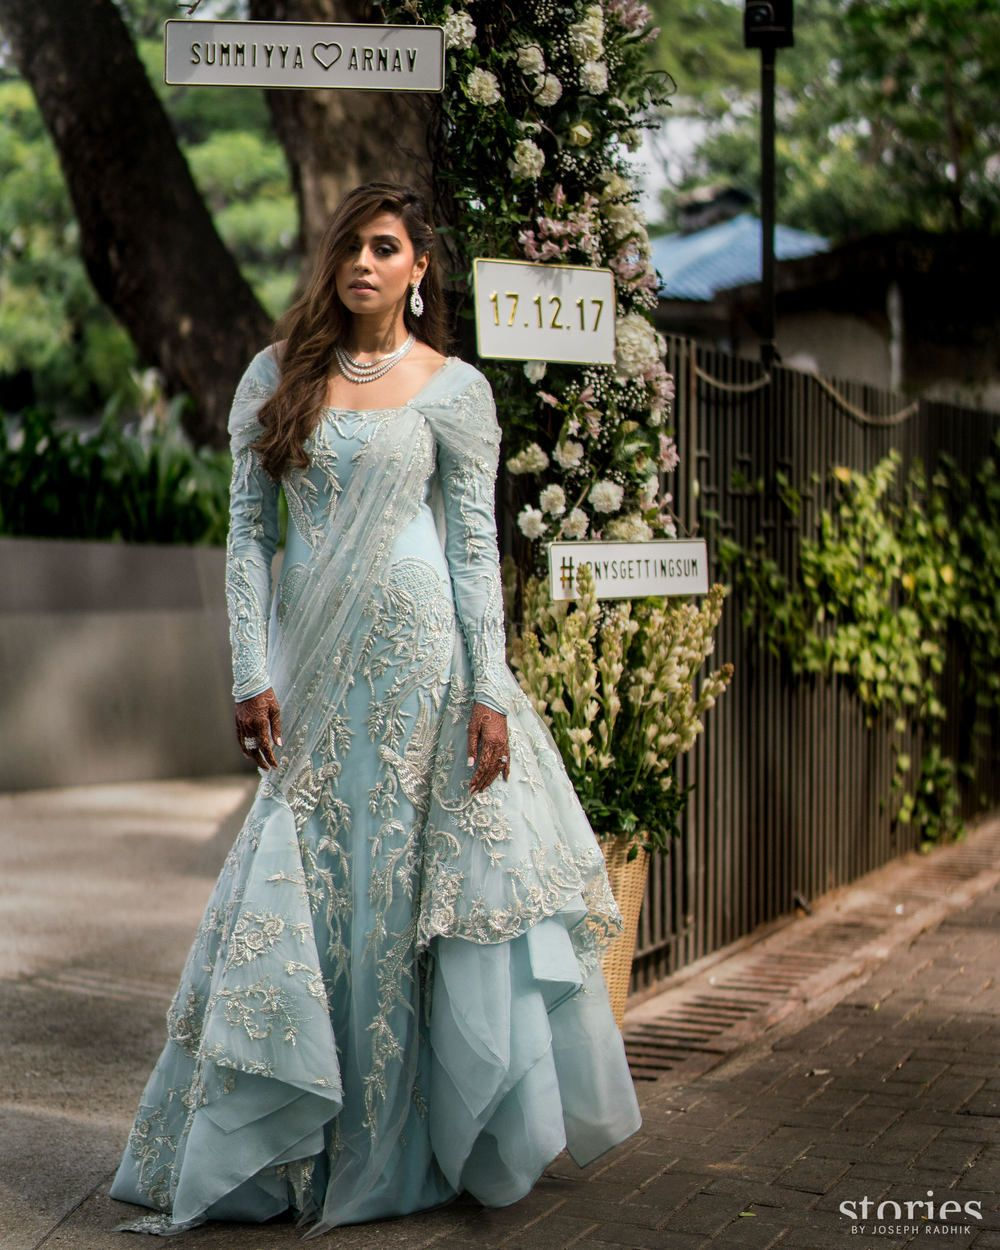 Photo of Offbeat wedding outfit light blue gown